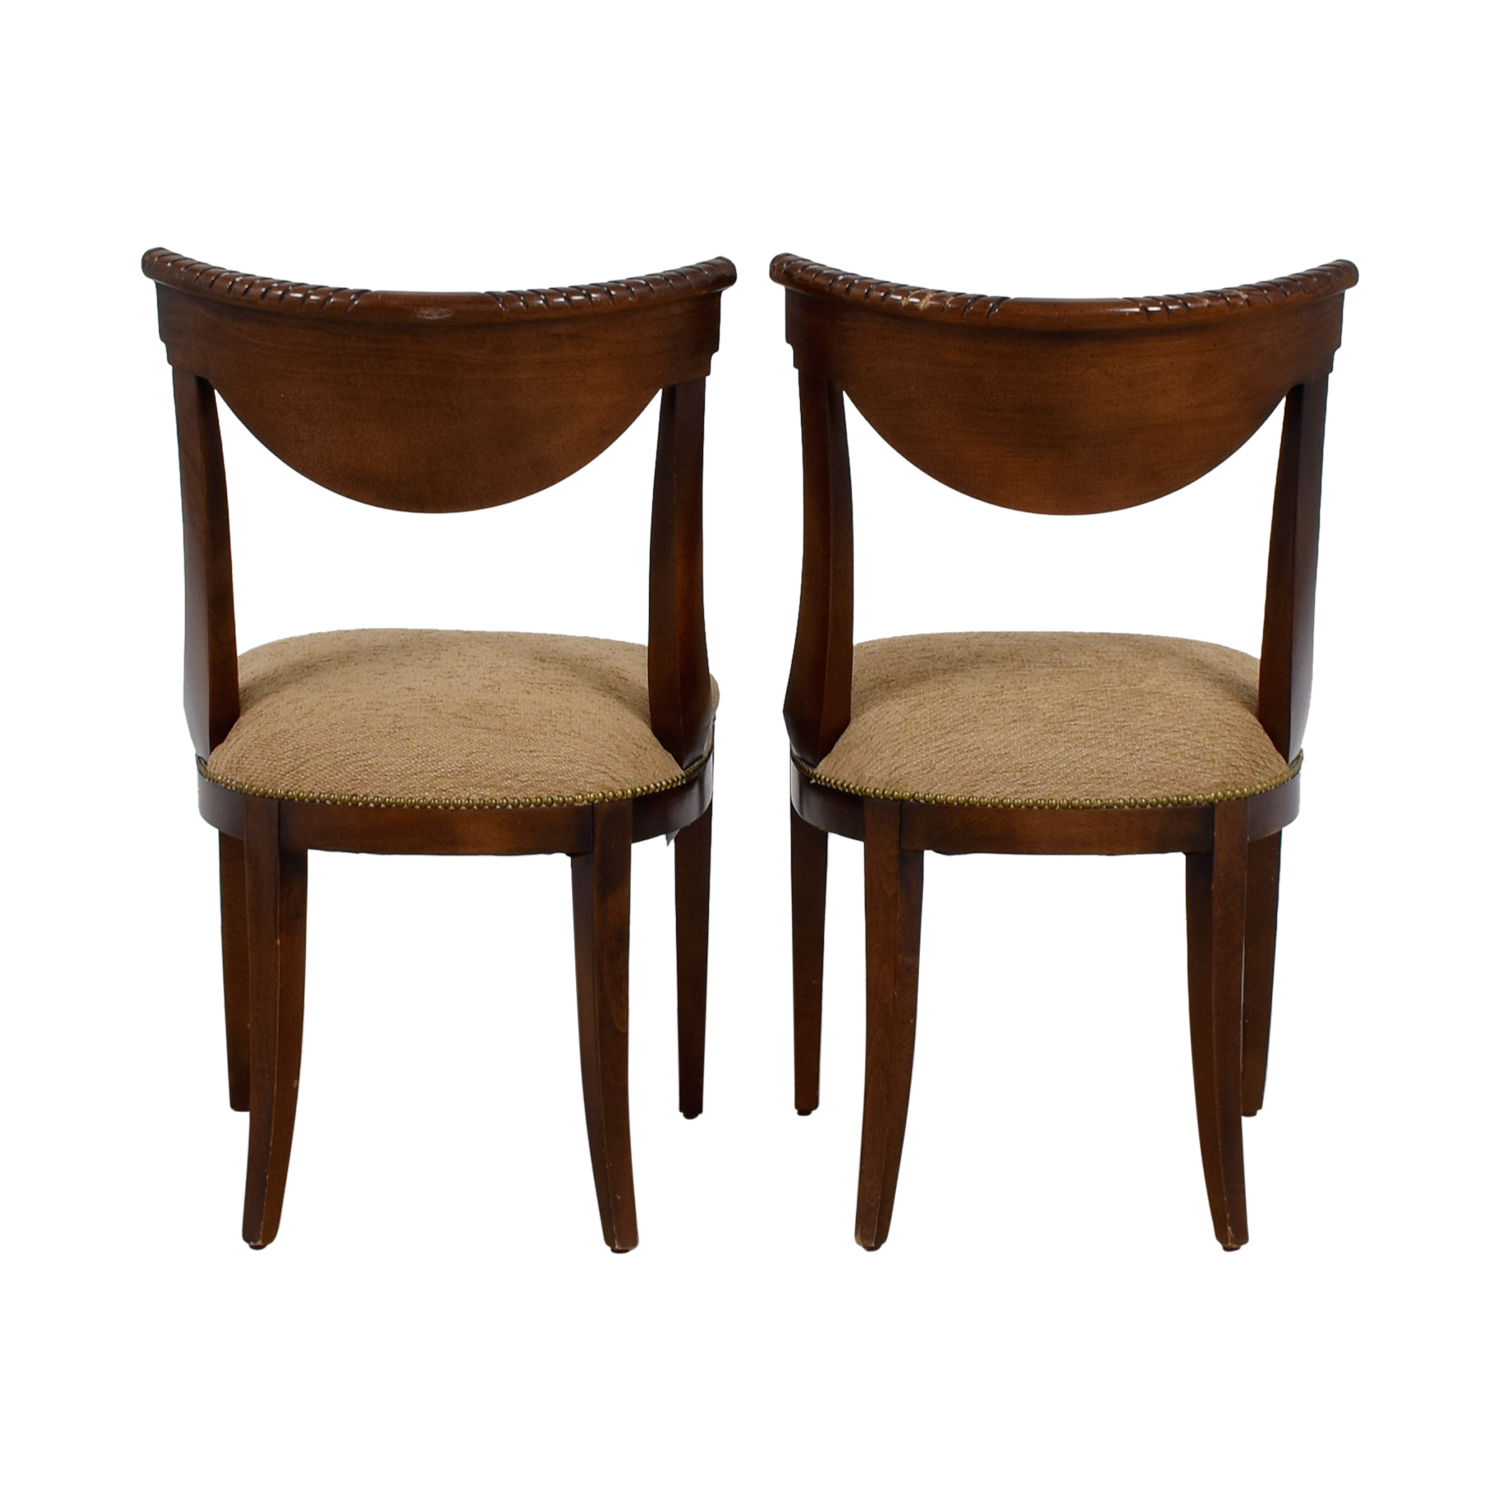 buy Mid-Century Tan Accent Chairs  Dining Chairs